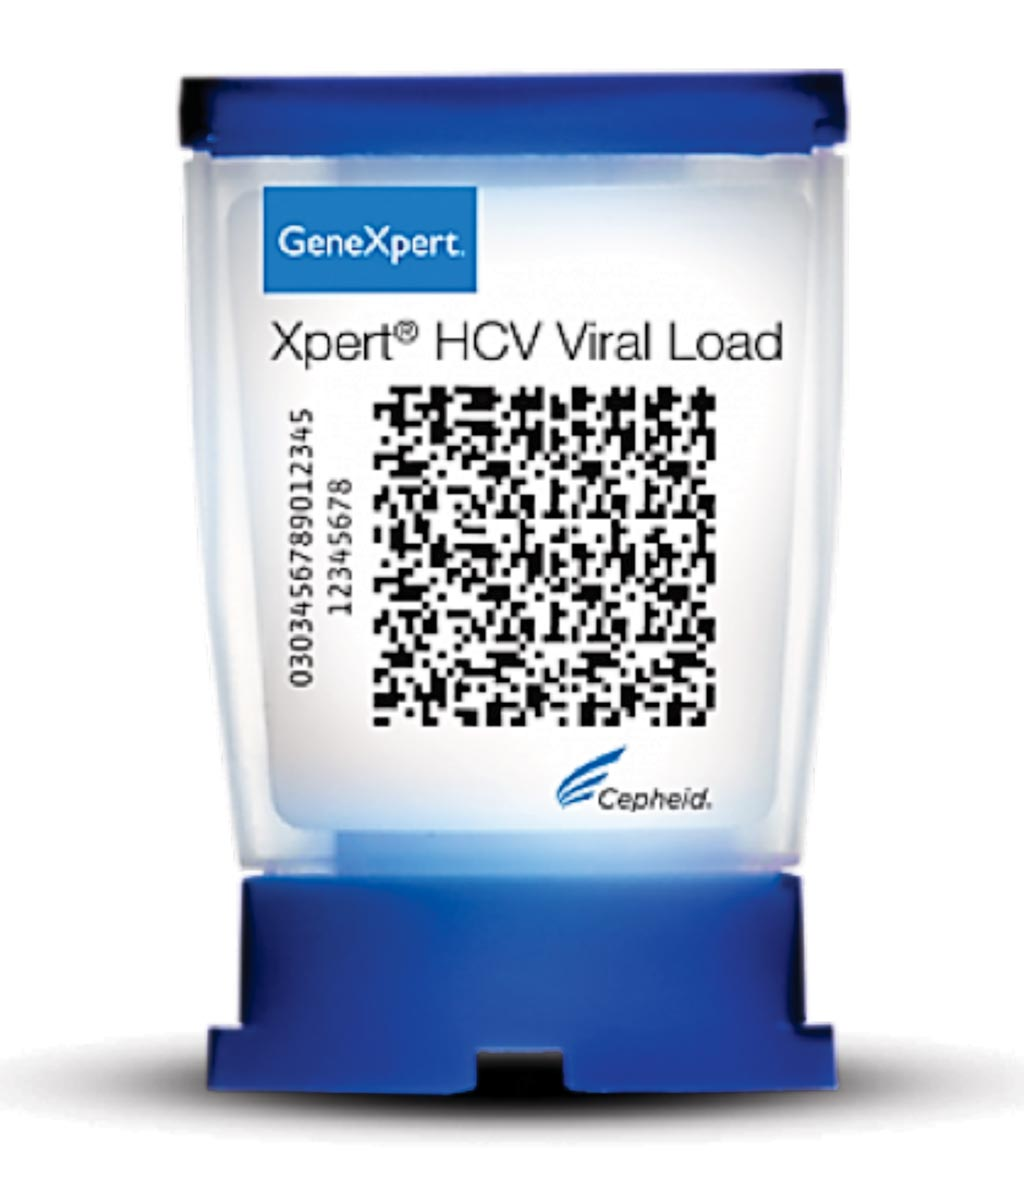 Image: The Xpert HCV Viral Load cartridge, a quantitative test that provides on-demand molecular testing for confirmation of infection and monitoring of Hepatitis C virus (HCV) (Photo courtesy of Cepheid).